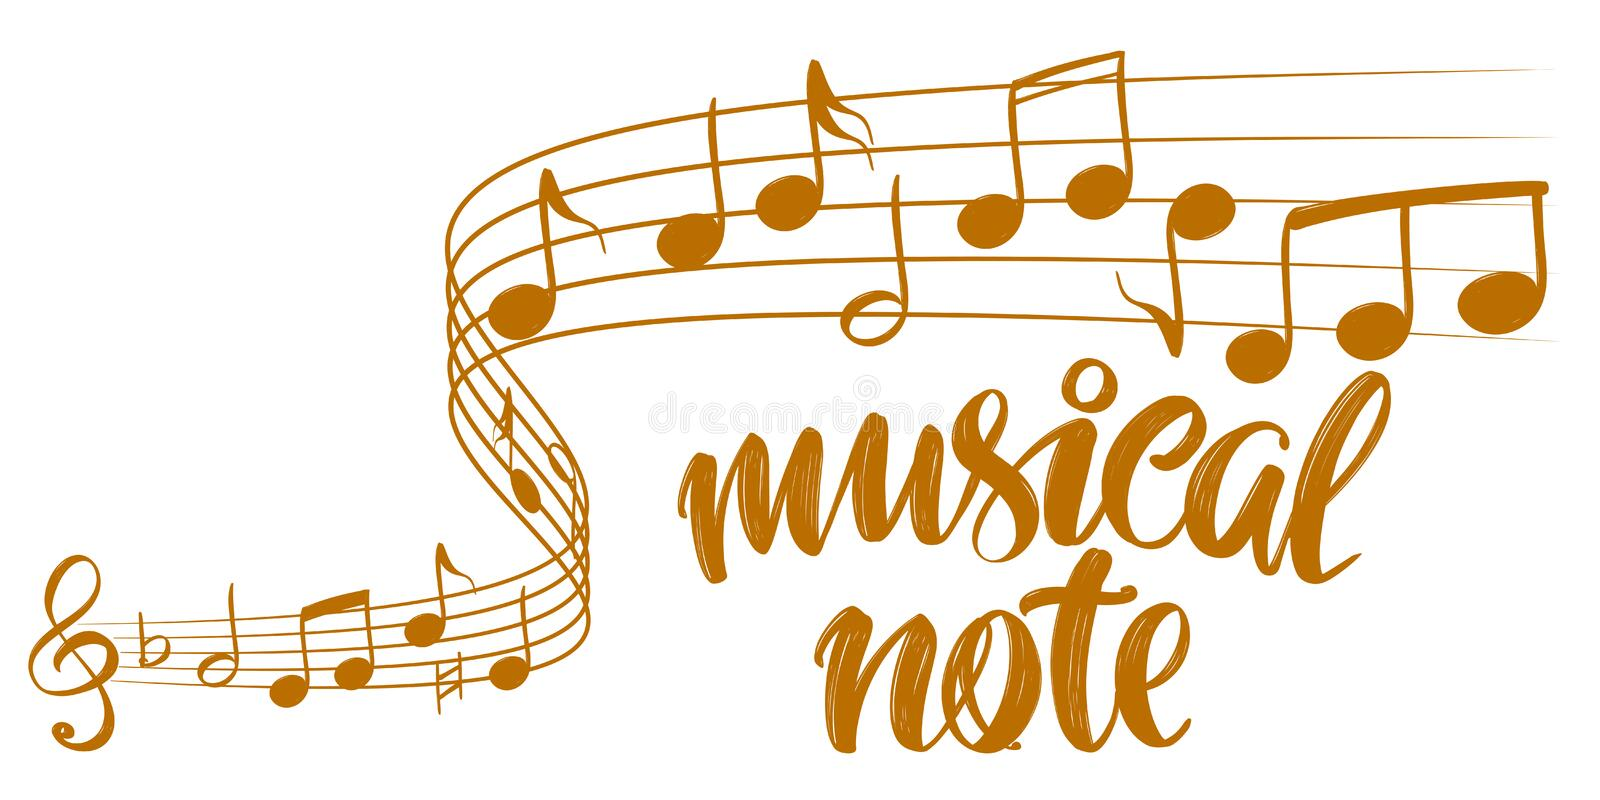 Musical notes icon, love music, calligraphy text hand drawn vector illustration sketch stock illustration